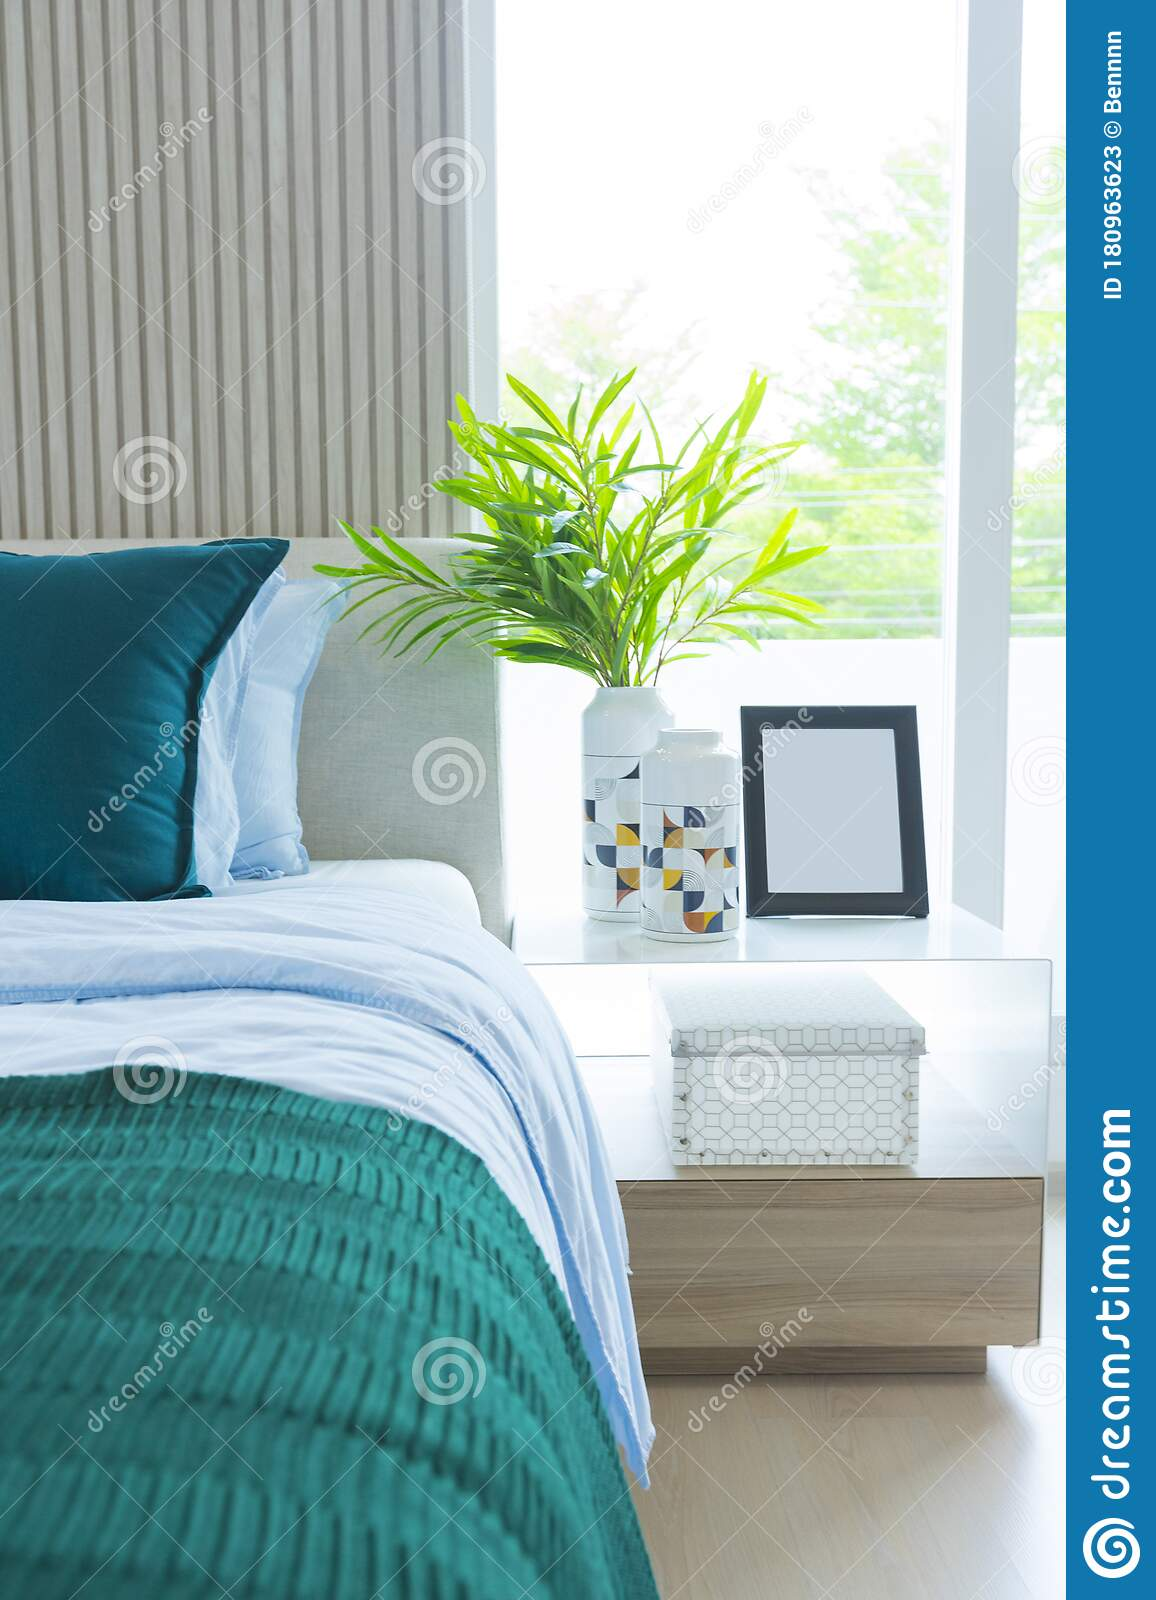 Scandinavian Bedroom Interior With Bed In Brown And Green Colors Stock Image Image Of Boho Decor 180963623